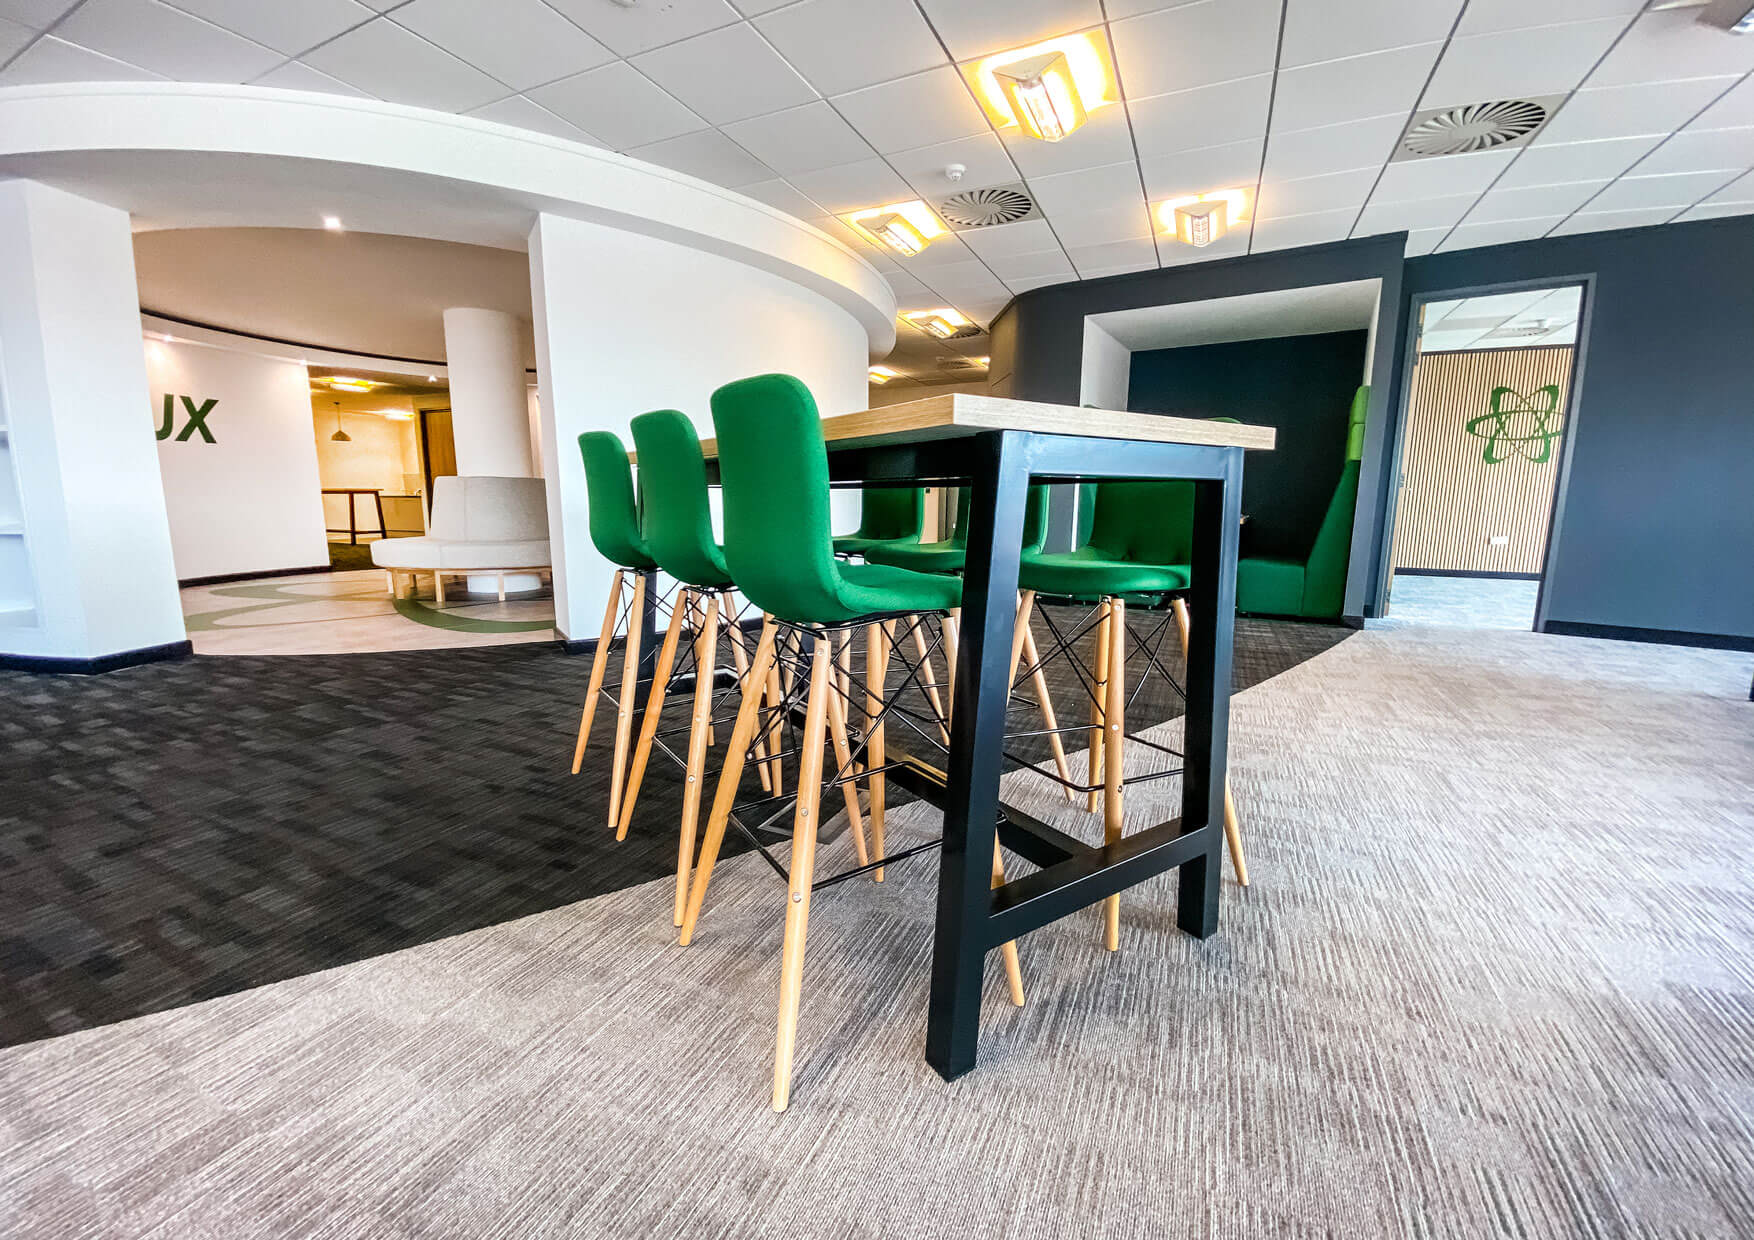 Curvalux-Office-Fitout-Breakout-seating